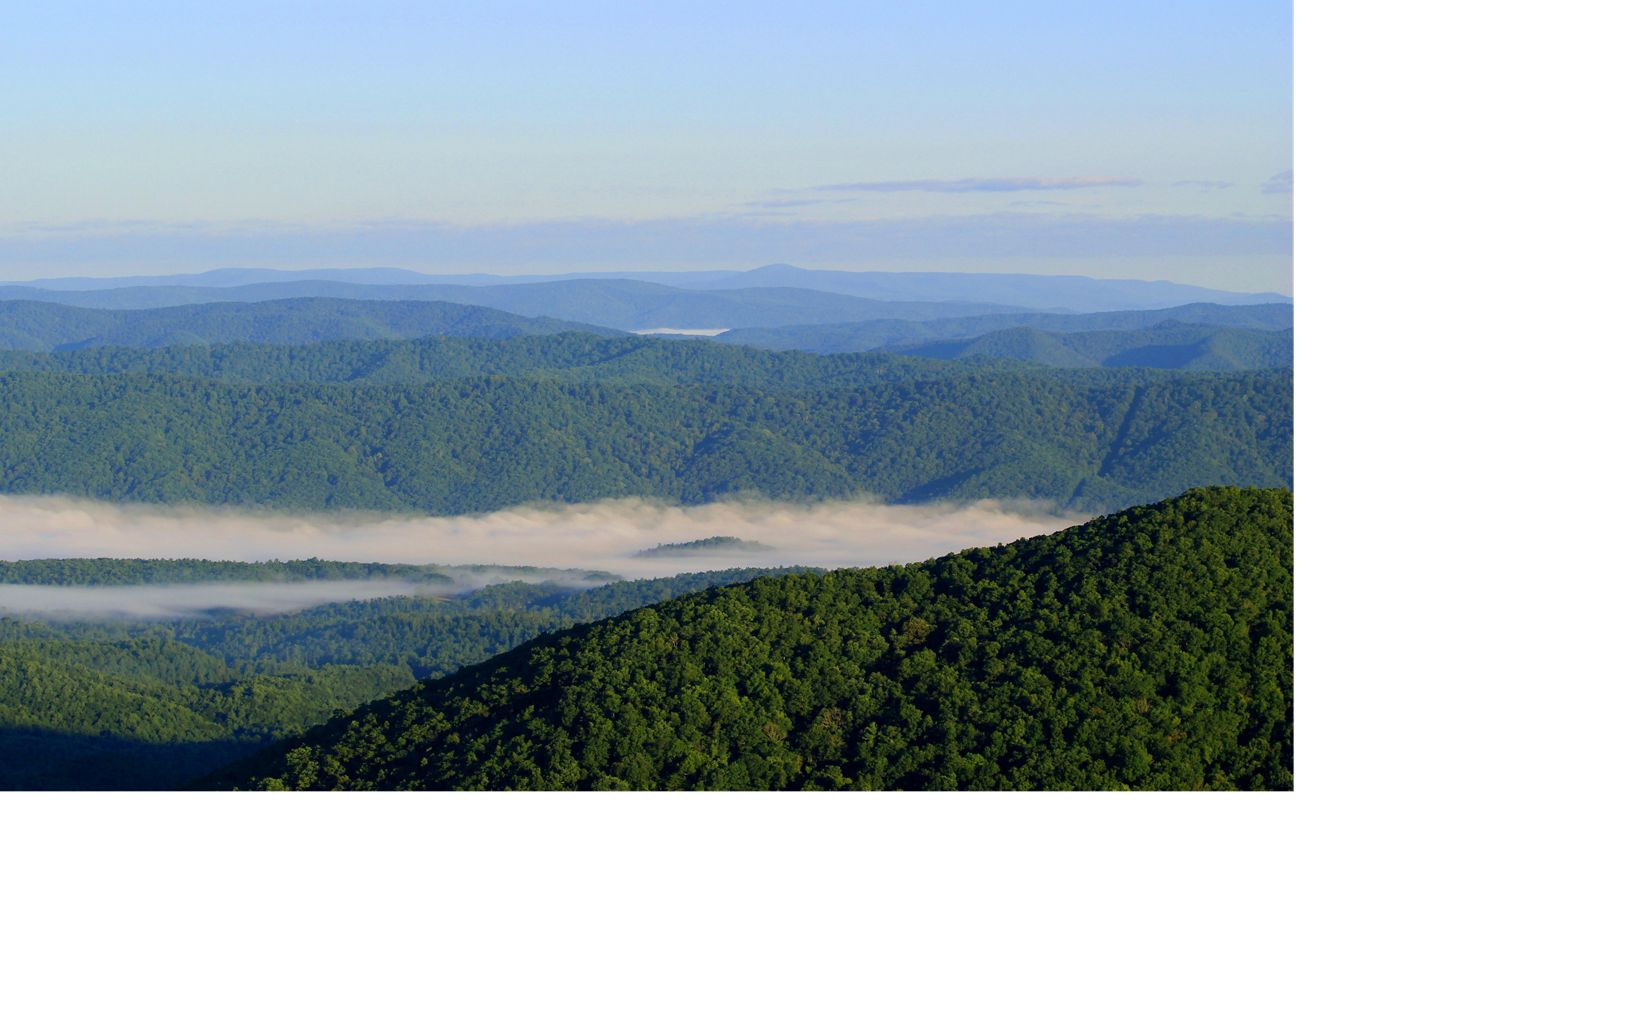 View of fog settling in the valleys shortly after sunrise at Flag Rock, Warm Springs Mountain Preserve, Virginia.